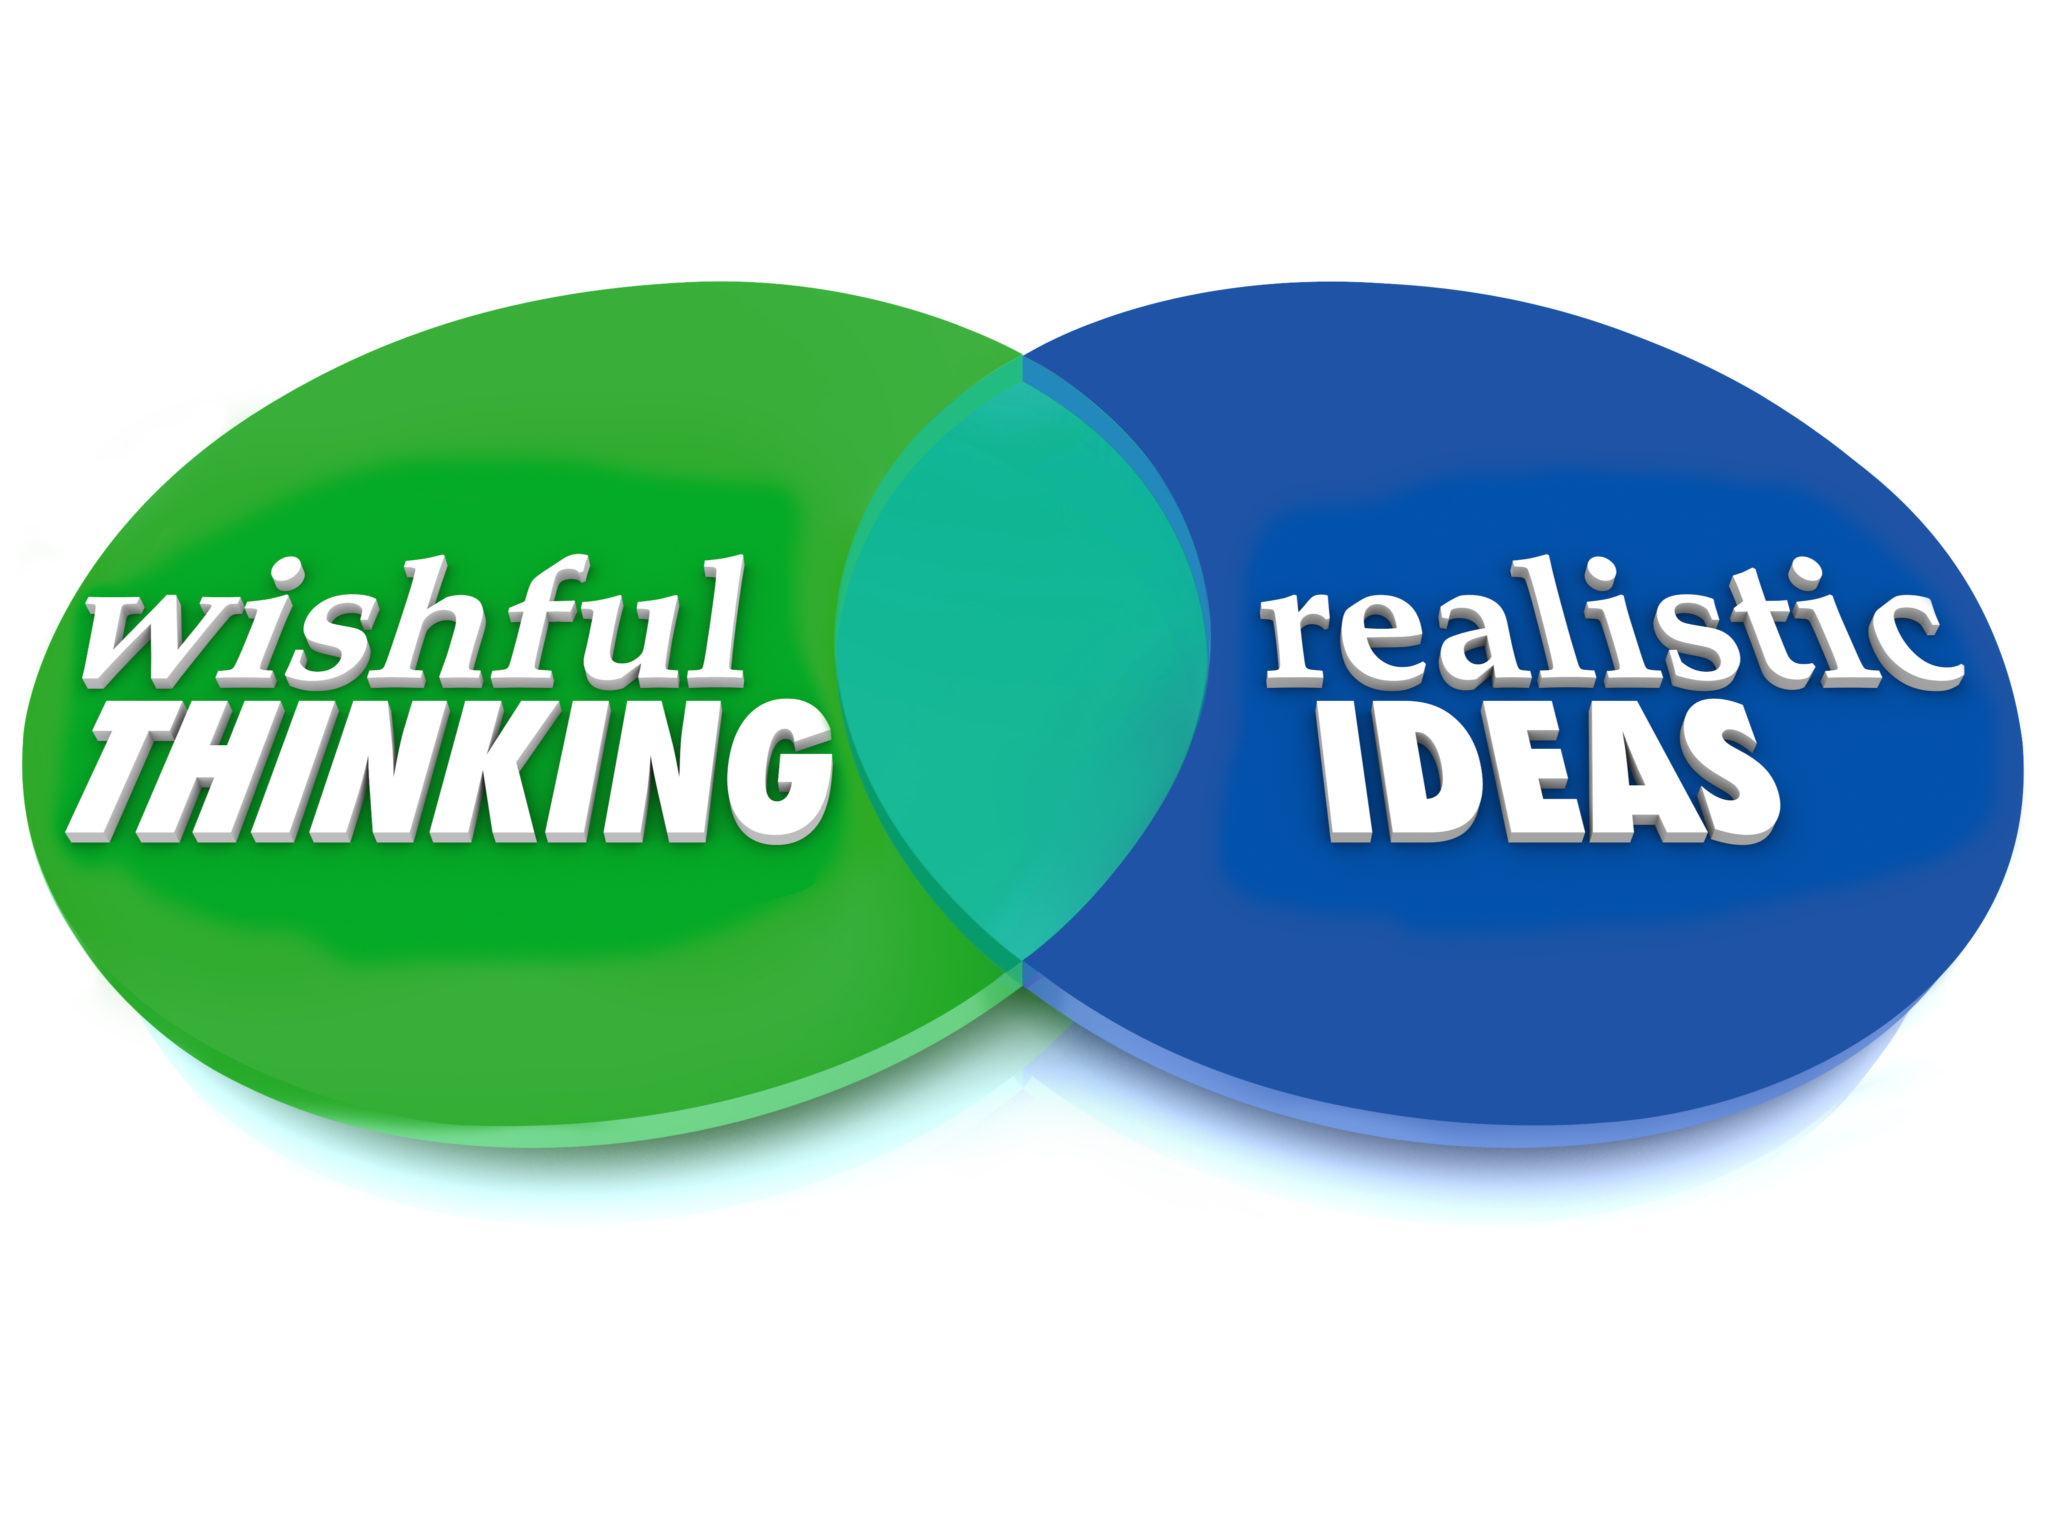 Realistic Trading Goals Lead to Greater Trading Success